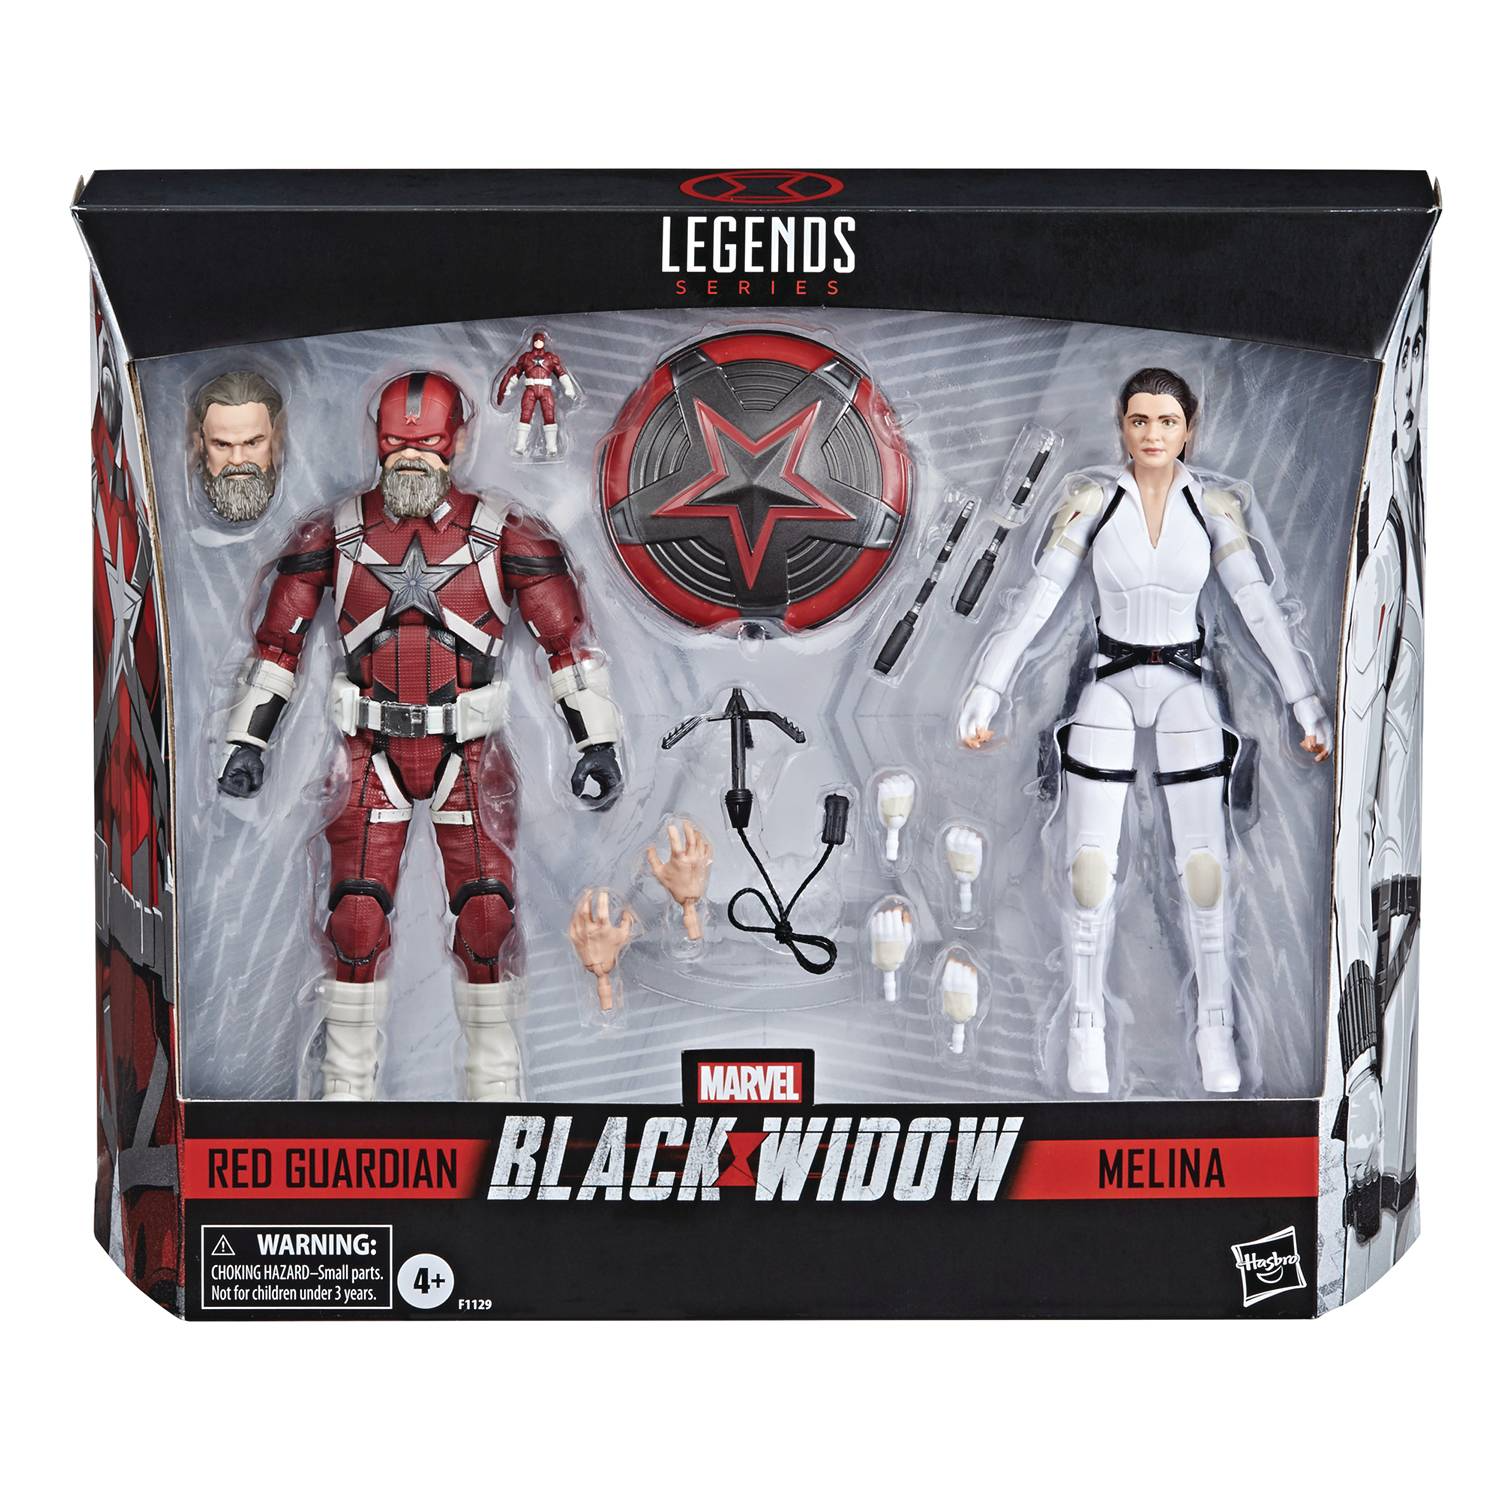 Marvel Legends - Black Widow - Red Guardian & Melina 2 Pack 6in Action Figure